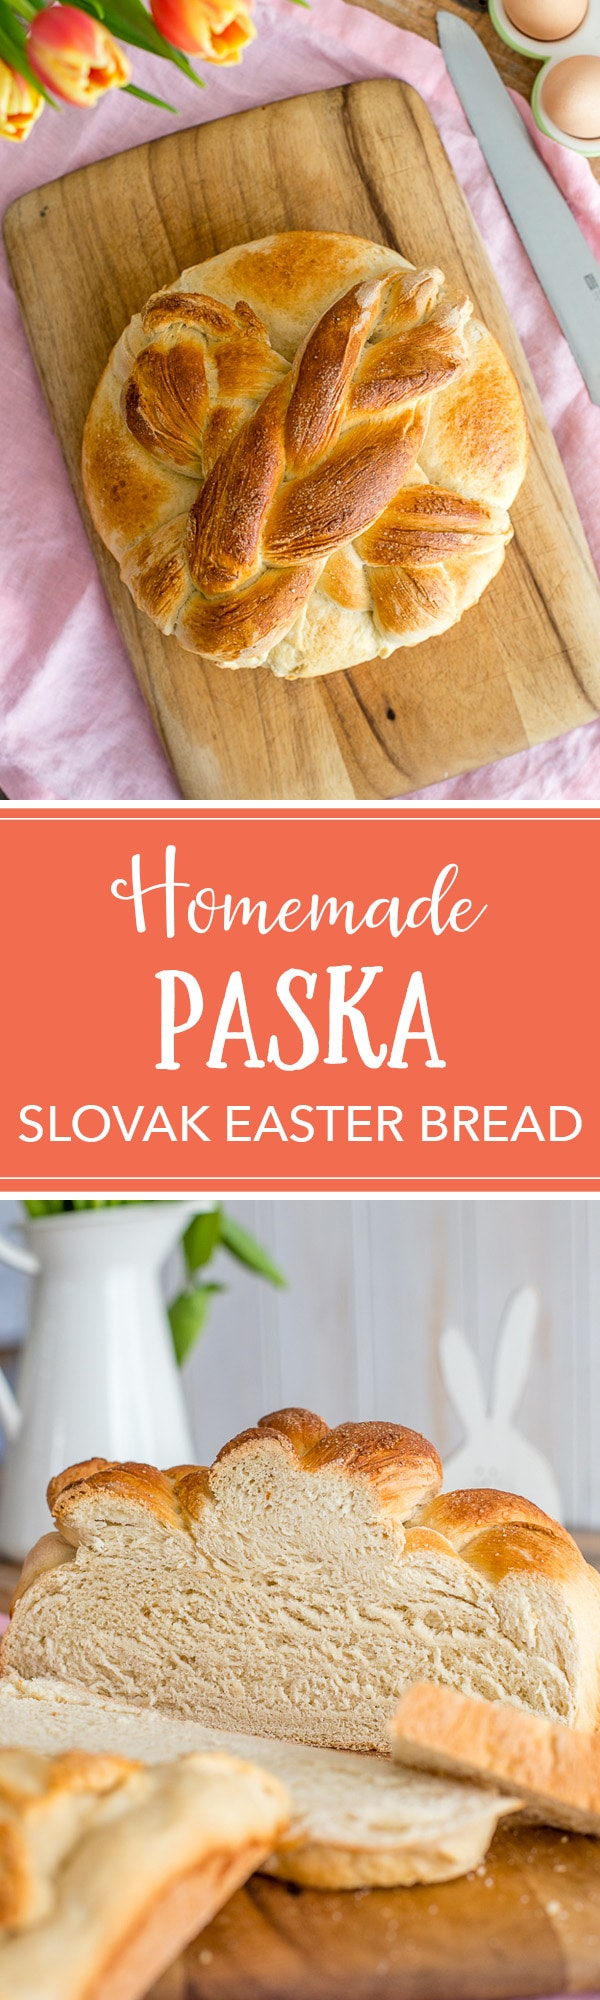 Homemade Paska is a traditional Slovak or Eastern European Easter bread sweetened with sugar and eggs for a rich, celebratory loaf. A favorite childhood tradition! #slovakrecipes #paska #easterrecipes #easterbread